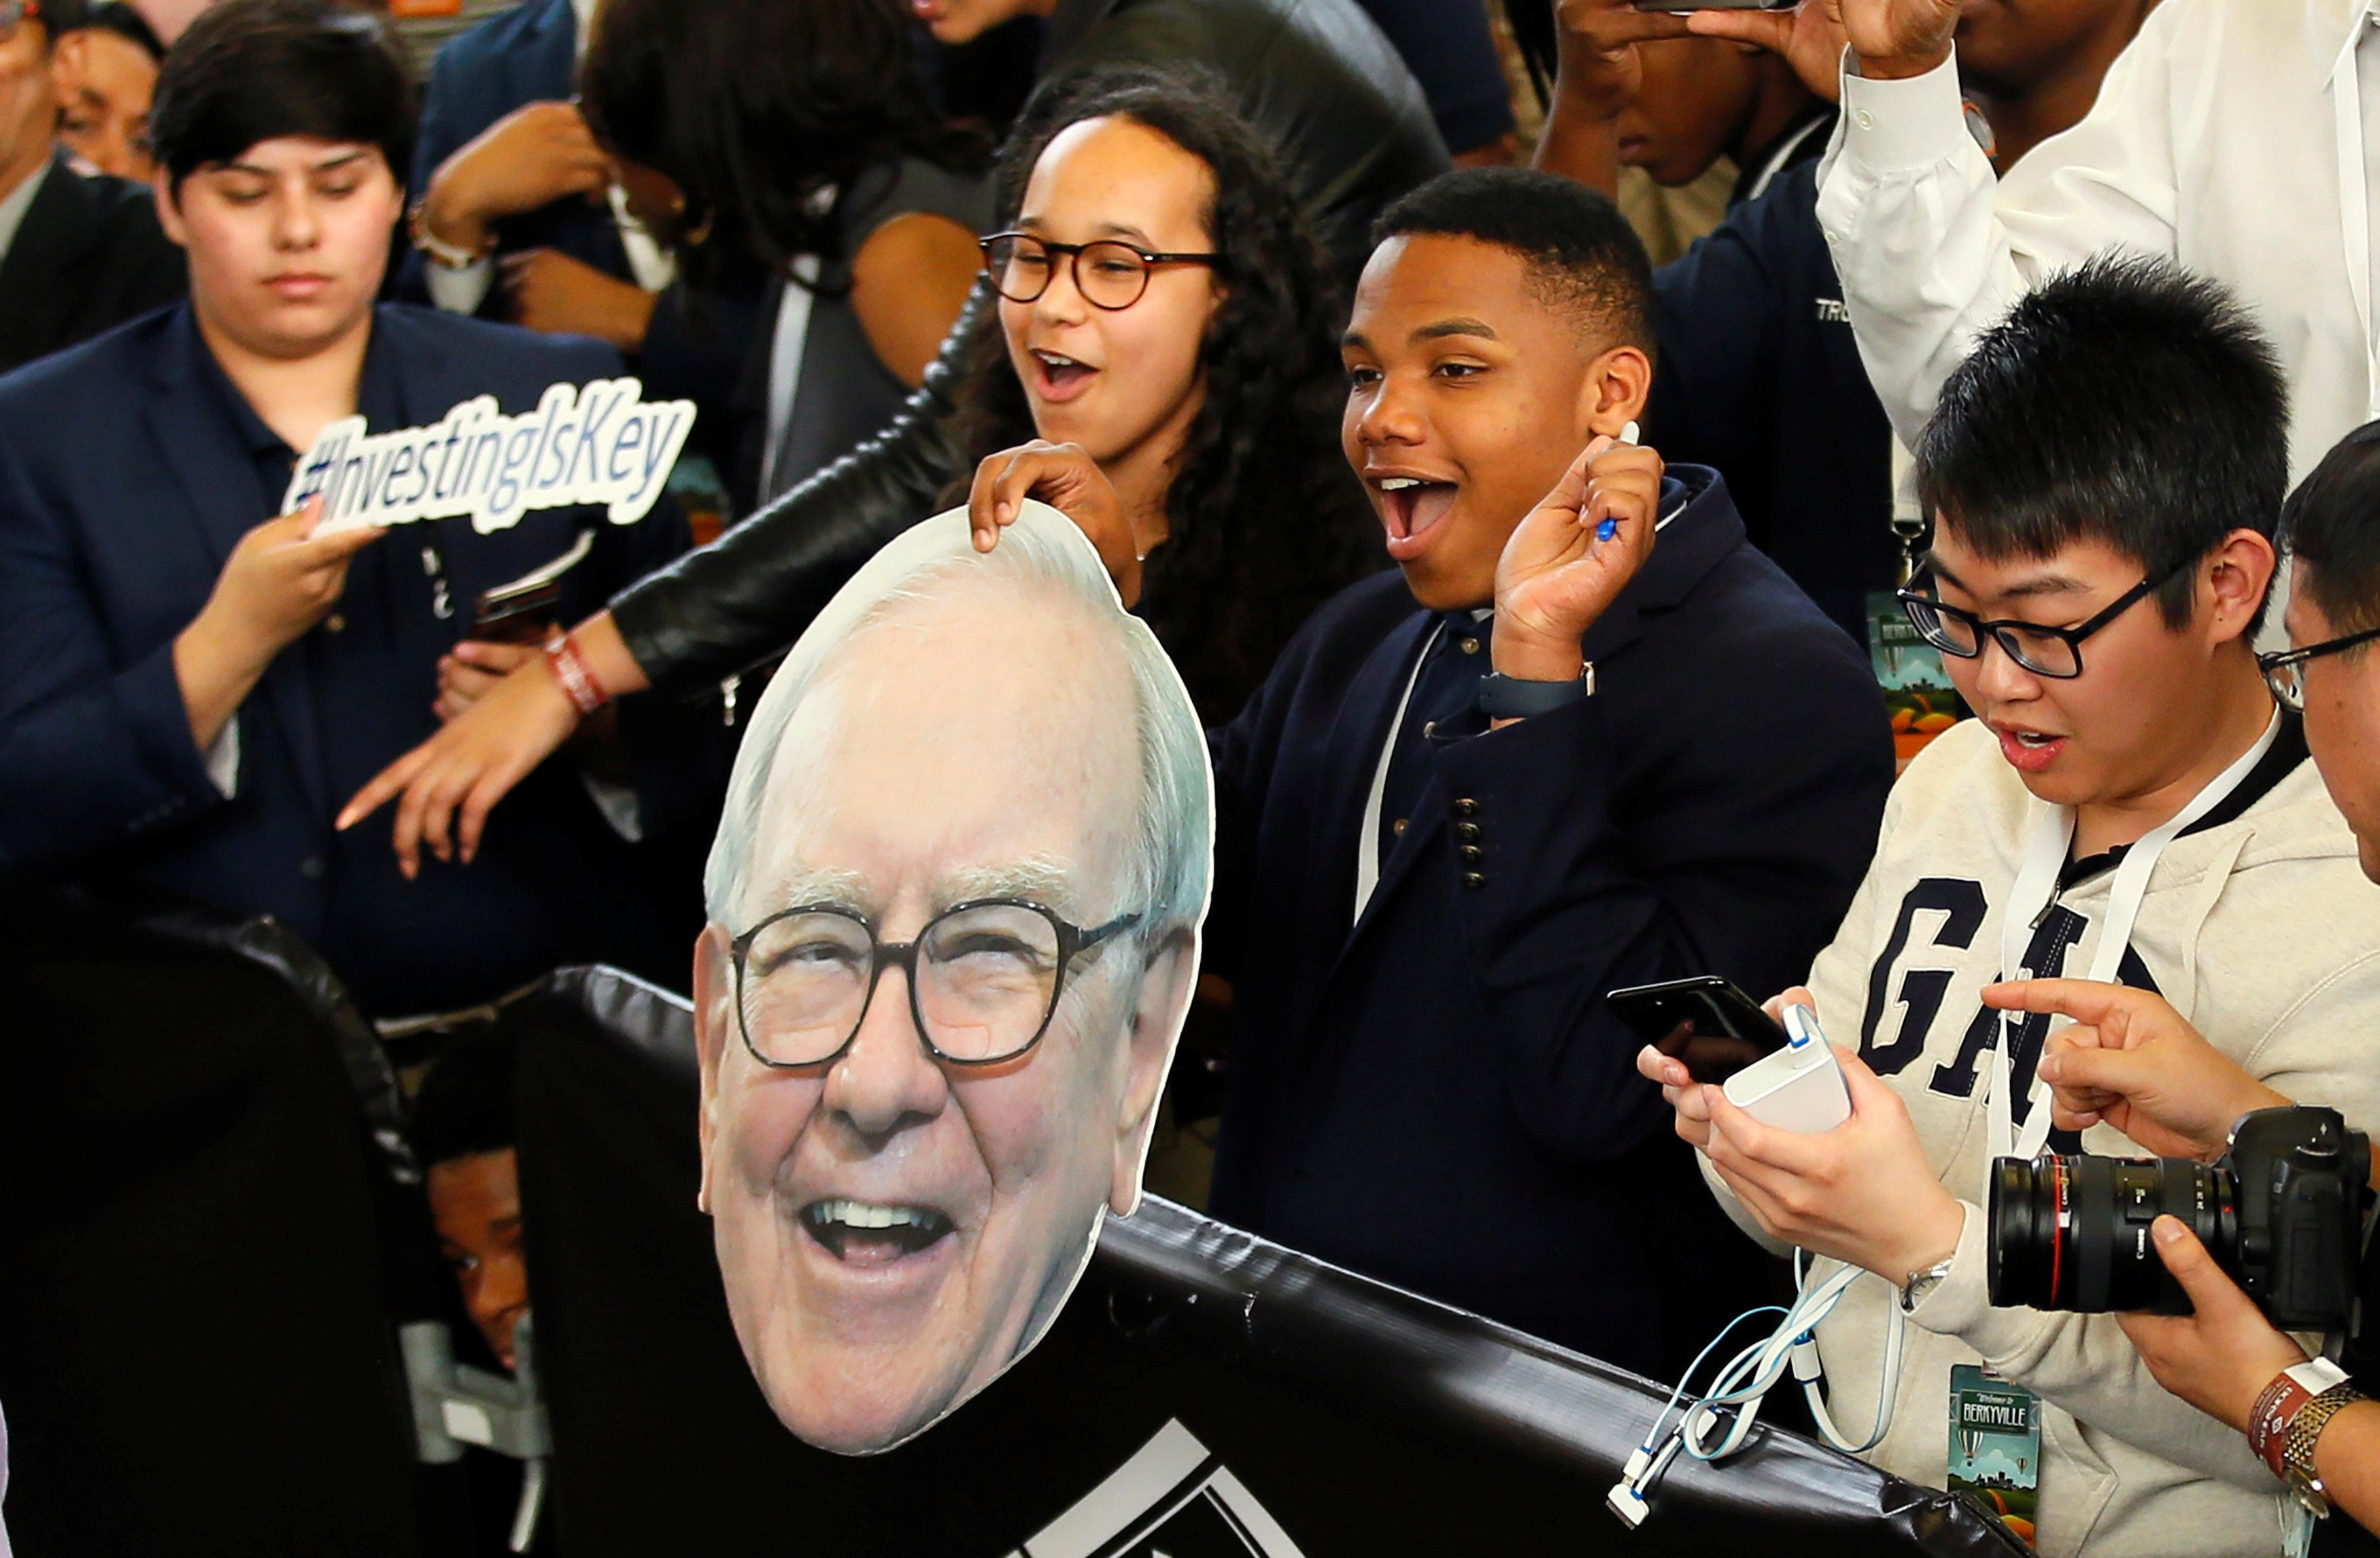 Students cheer the arrival of Berkshire Hathaway CEO Warren Buffett during the Berkshire Hathaway annual meeting weekend in Omaha, Nebraska, U.S. May 7, 2017. REUTERS/Rick Wilking